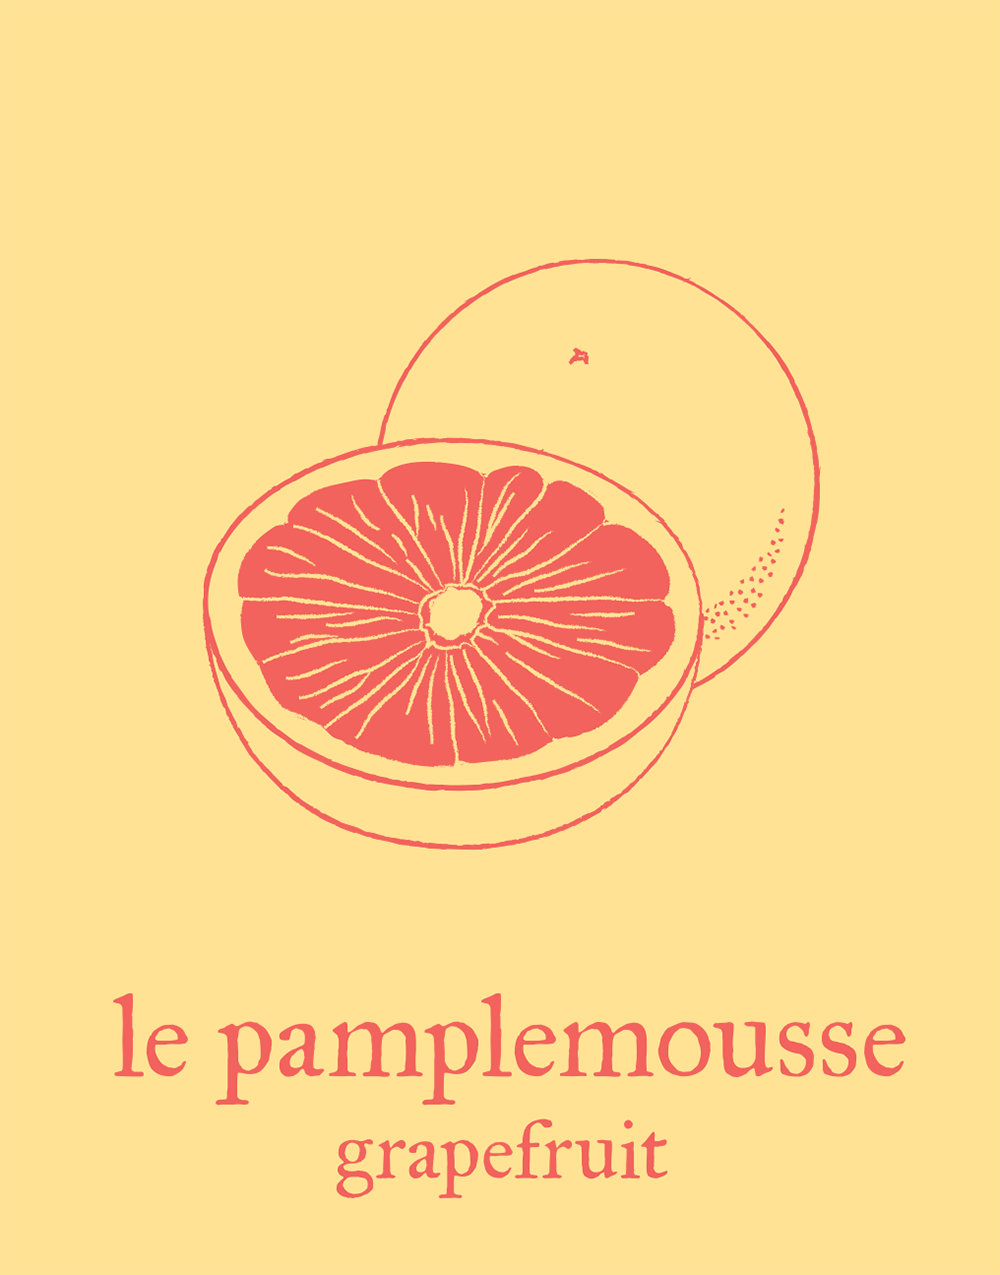 french-flashcard-tshirts/grapefruit.png